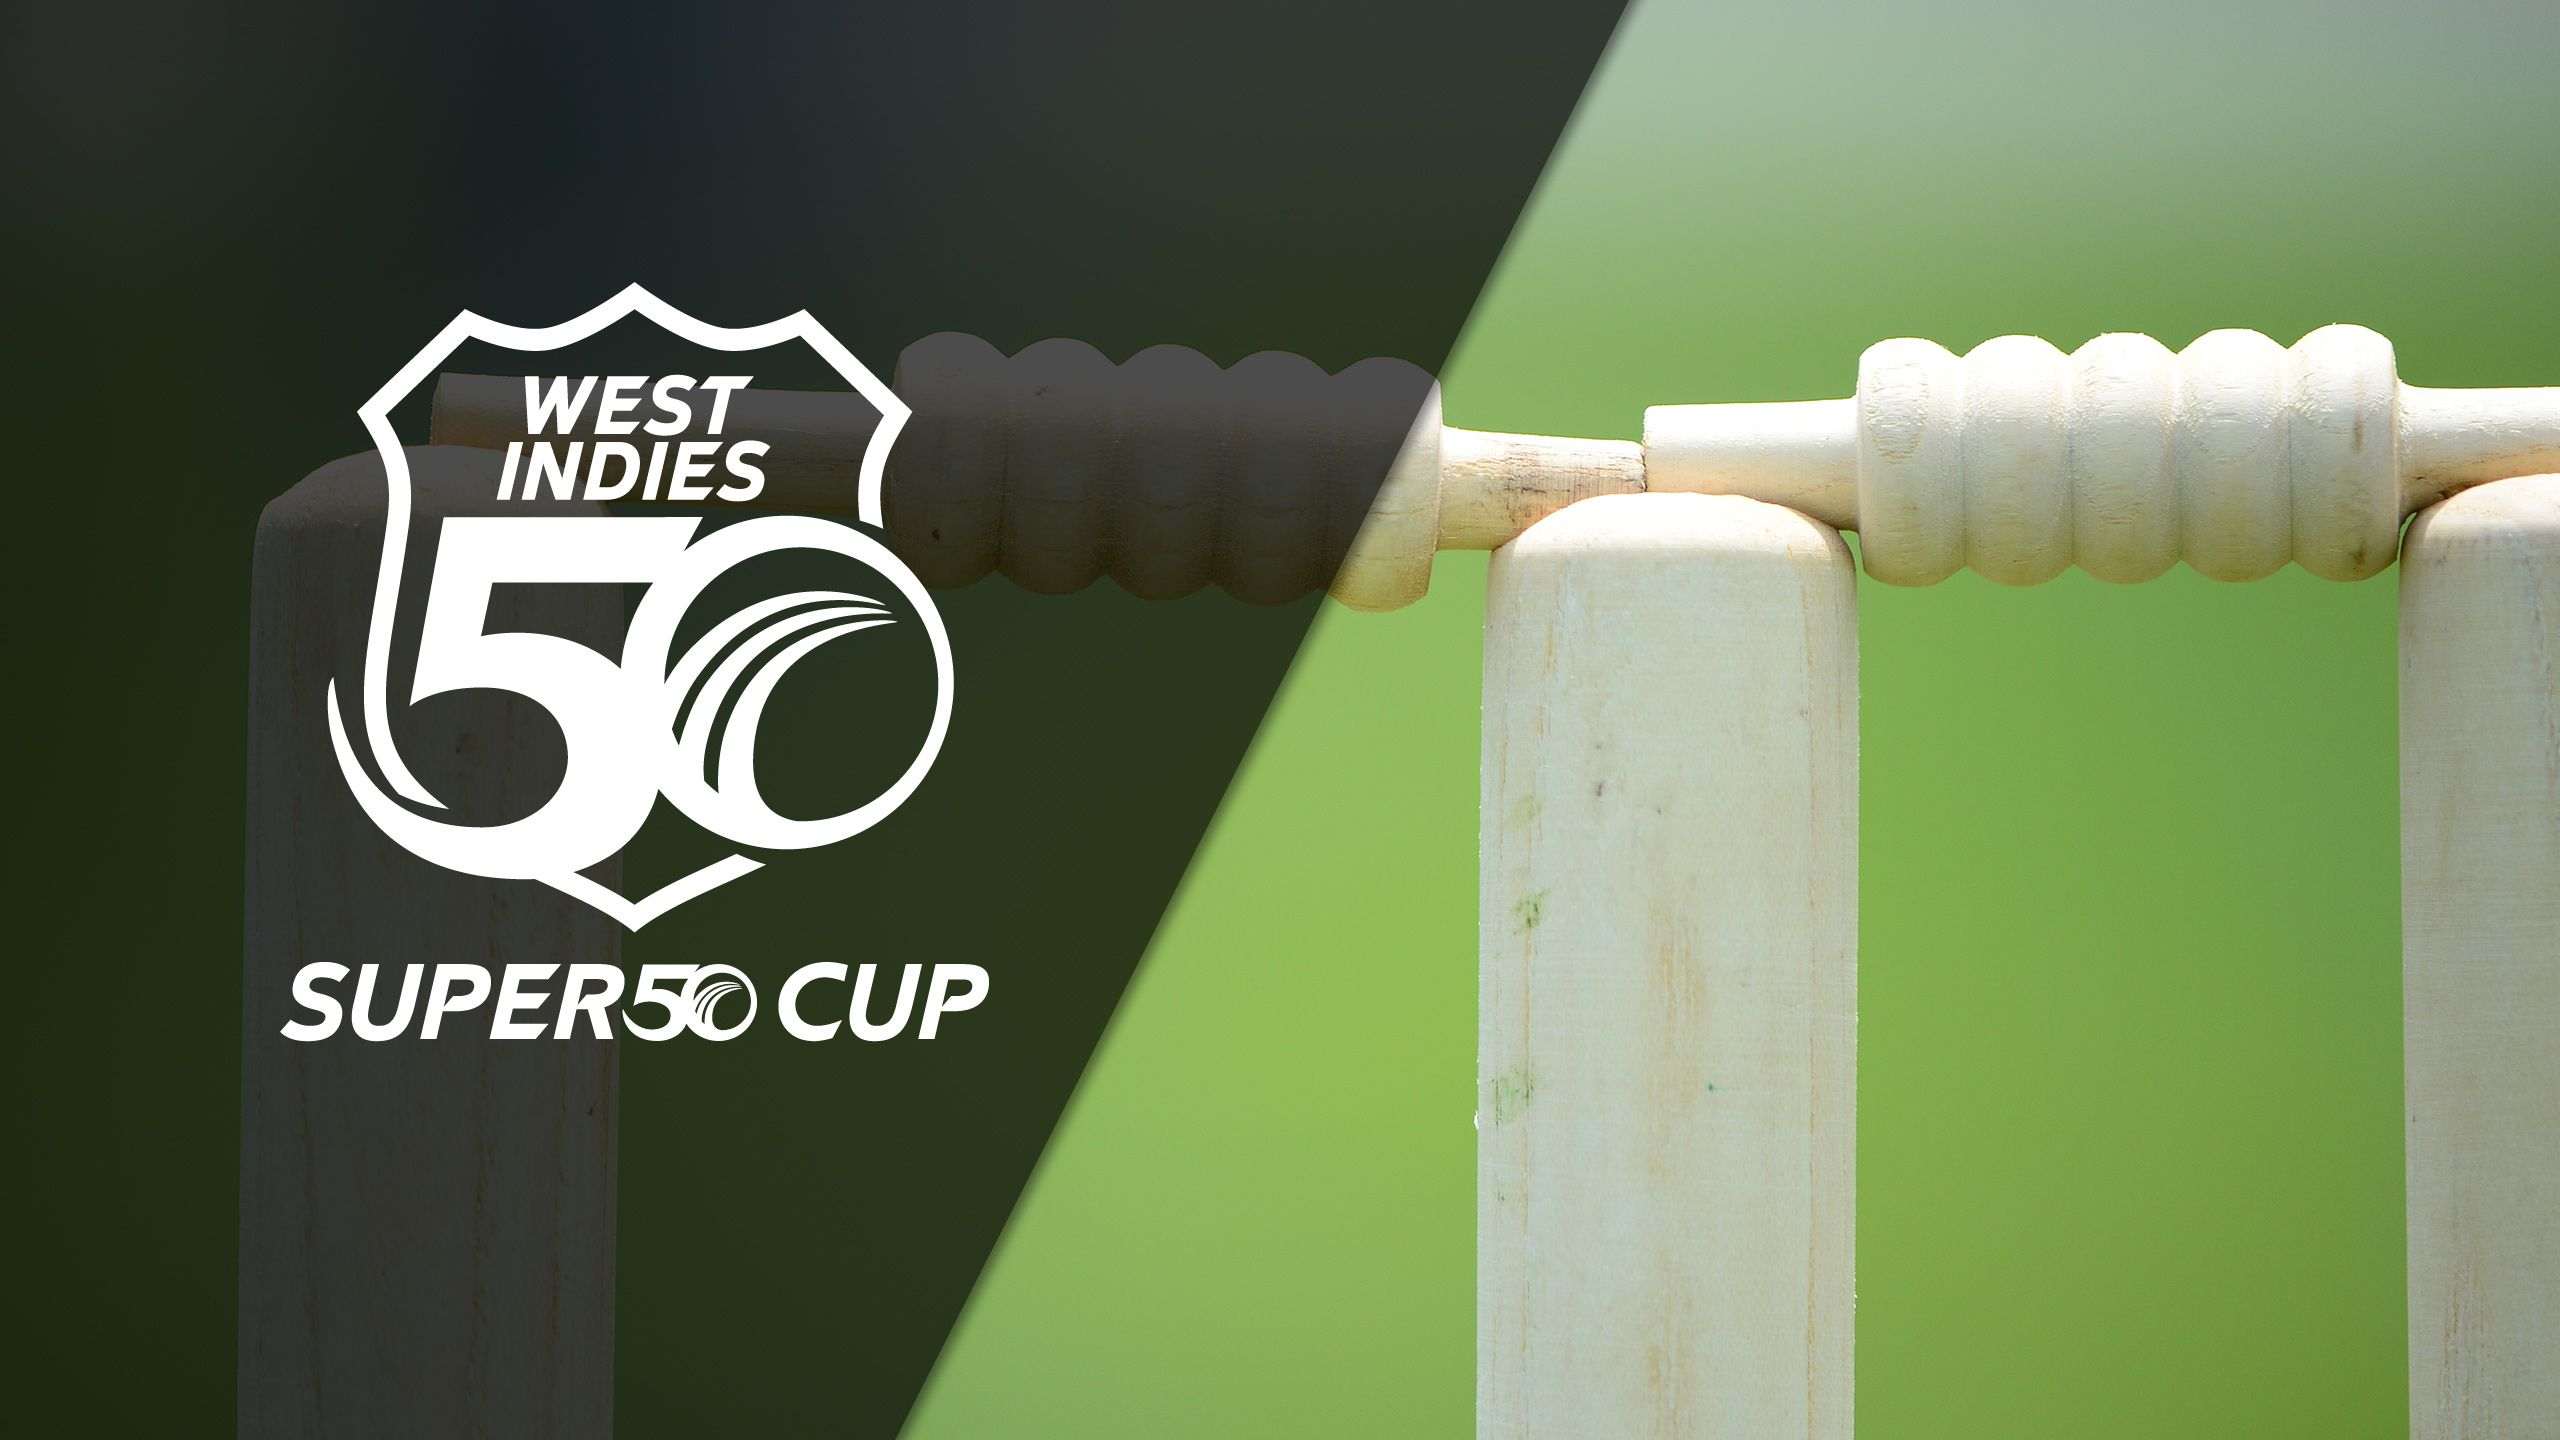 Leeward Islands Hurricanes vs. Kent Spitfires (West Indies Super50 Cup)